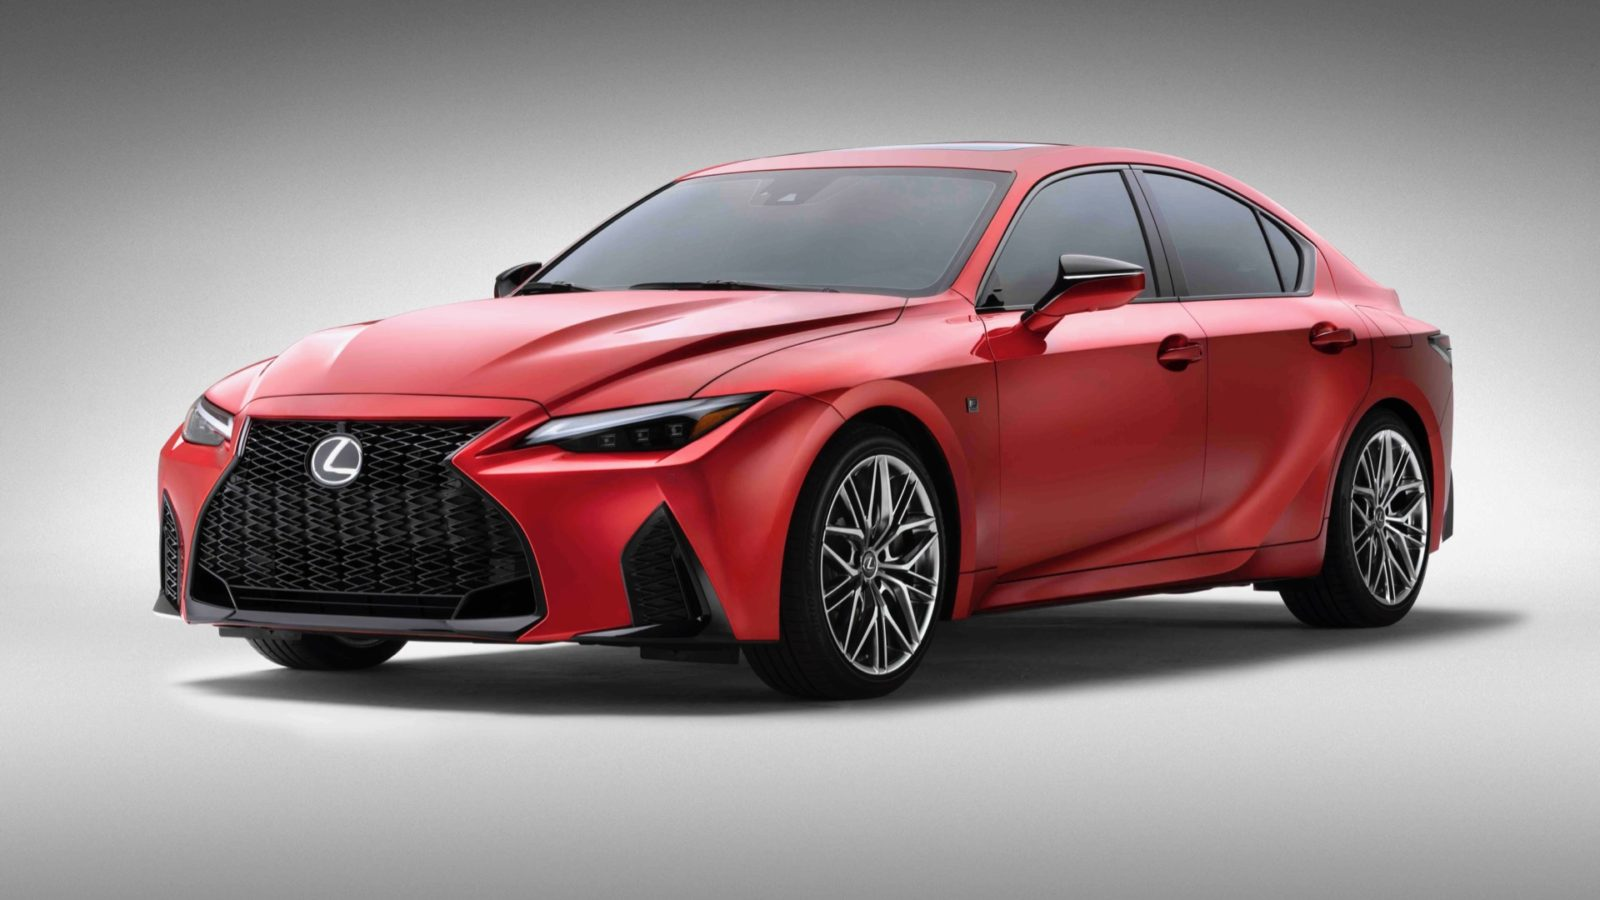 2022-lexus-is-500-f-sport-performance-rekindles-is-f-with-472-hp-5.0-liter-v-8